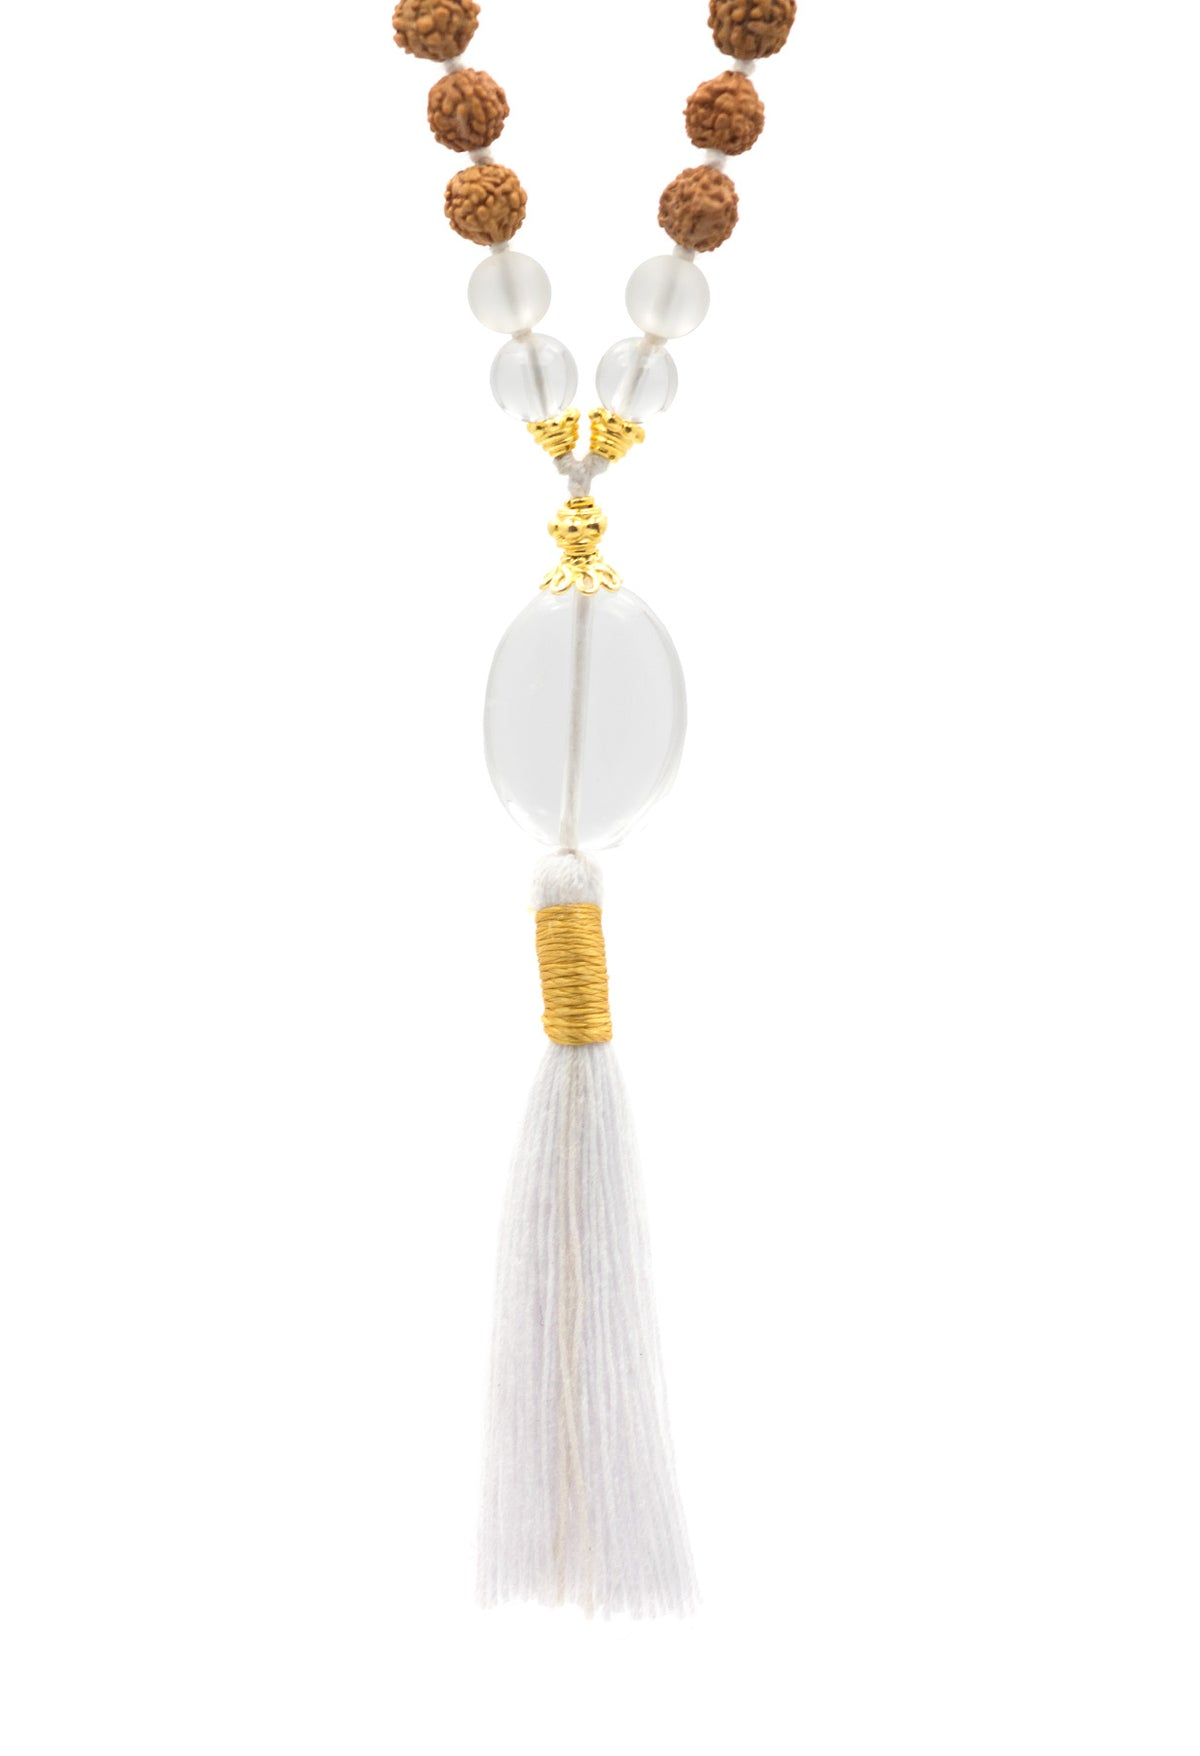 THE CROWN CHAKRA MALA FOR HIM